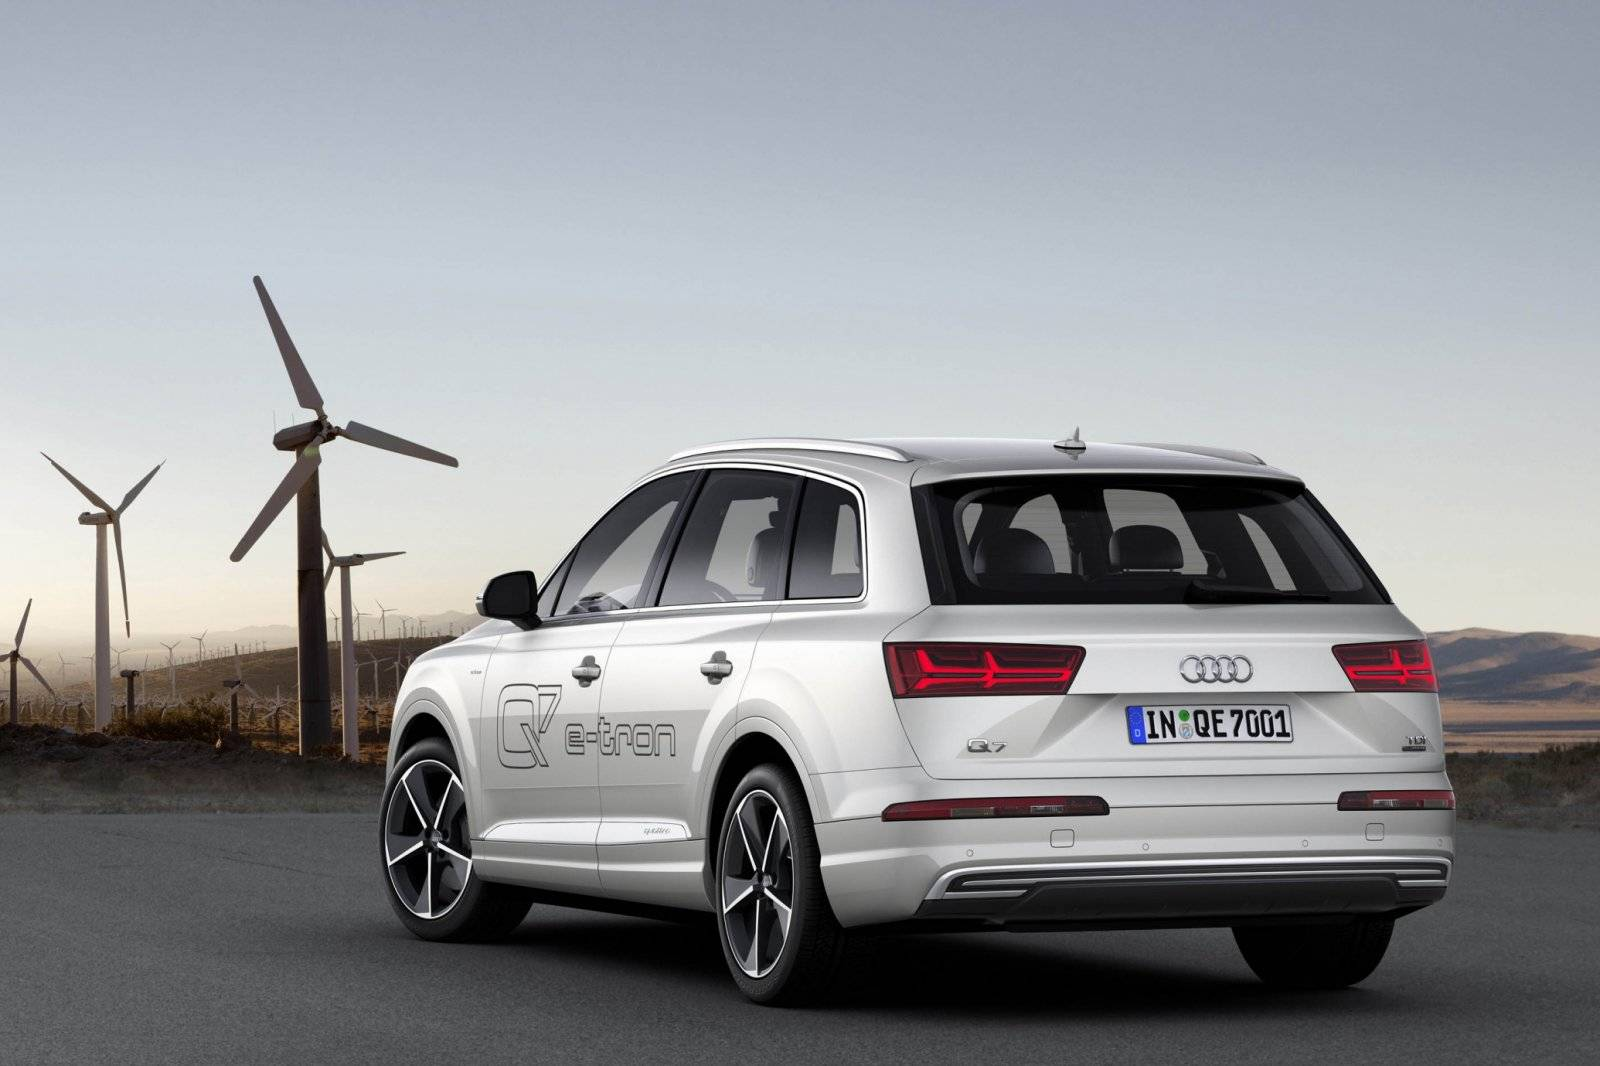 de audi q7 e tron diesel hybride met 15 bijtelling autonieuws. Black Bedroom Furniture Sets. Home Design Ideas